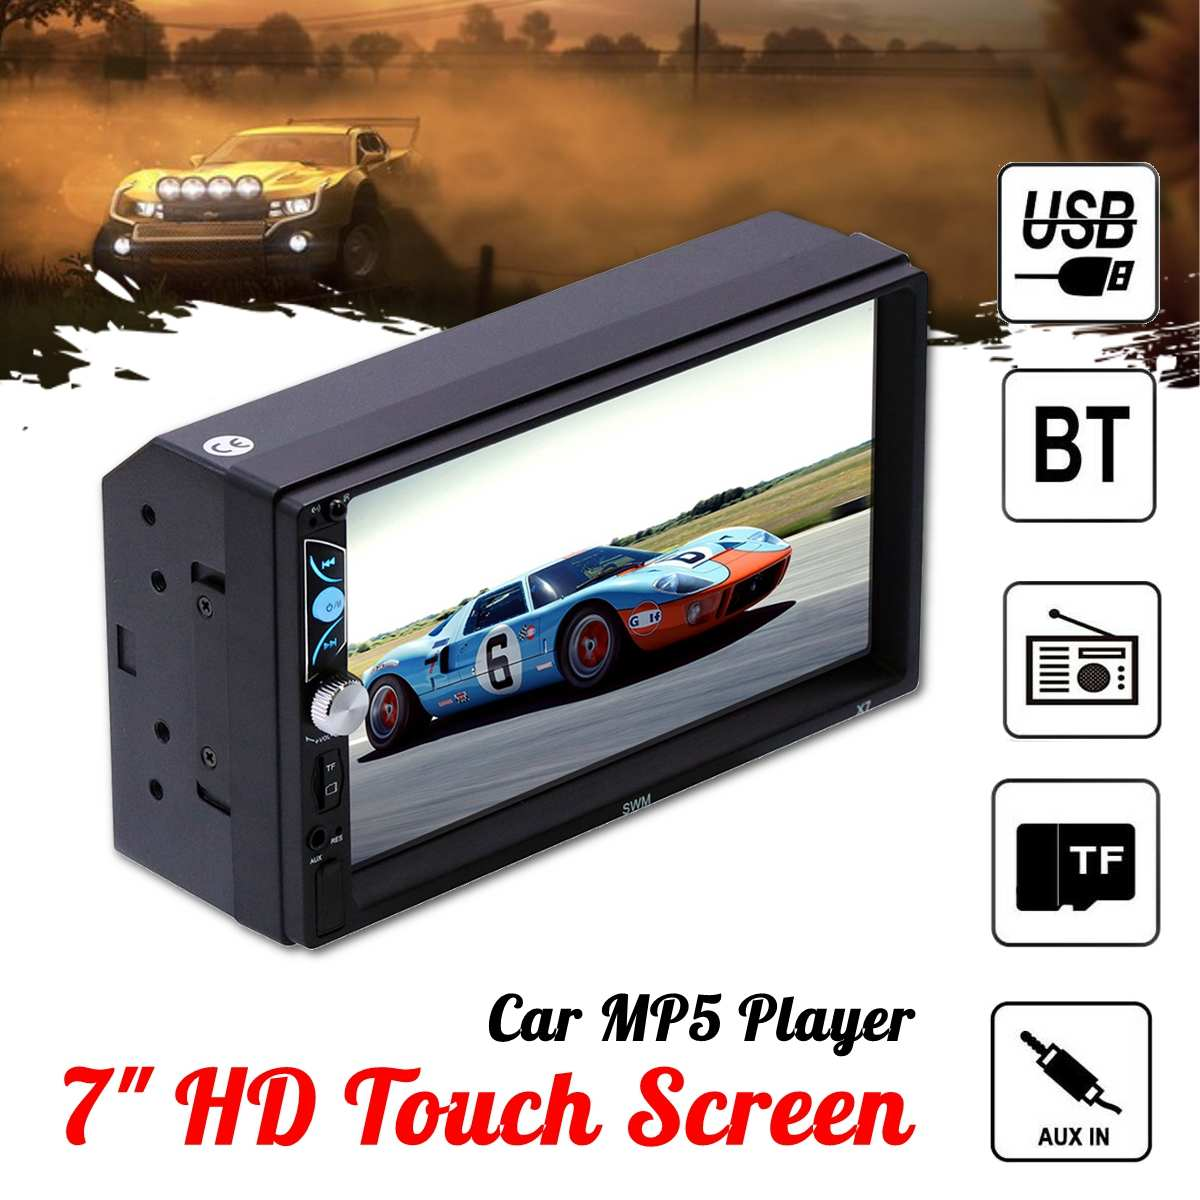 7 HD Touch Screen universal  Car MP5 Audio Video MP4 TF Card U Disk AUX bluetooth MP3 Player interconnection reversing image7 HD Touch Screen universal  Car MP5 Audio Video MP4 TF Card U Disk AUX bluetooth MP3 Player interconnection reversing image